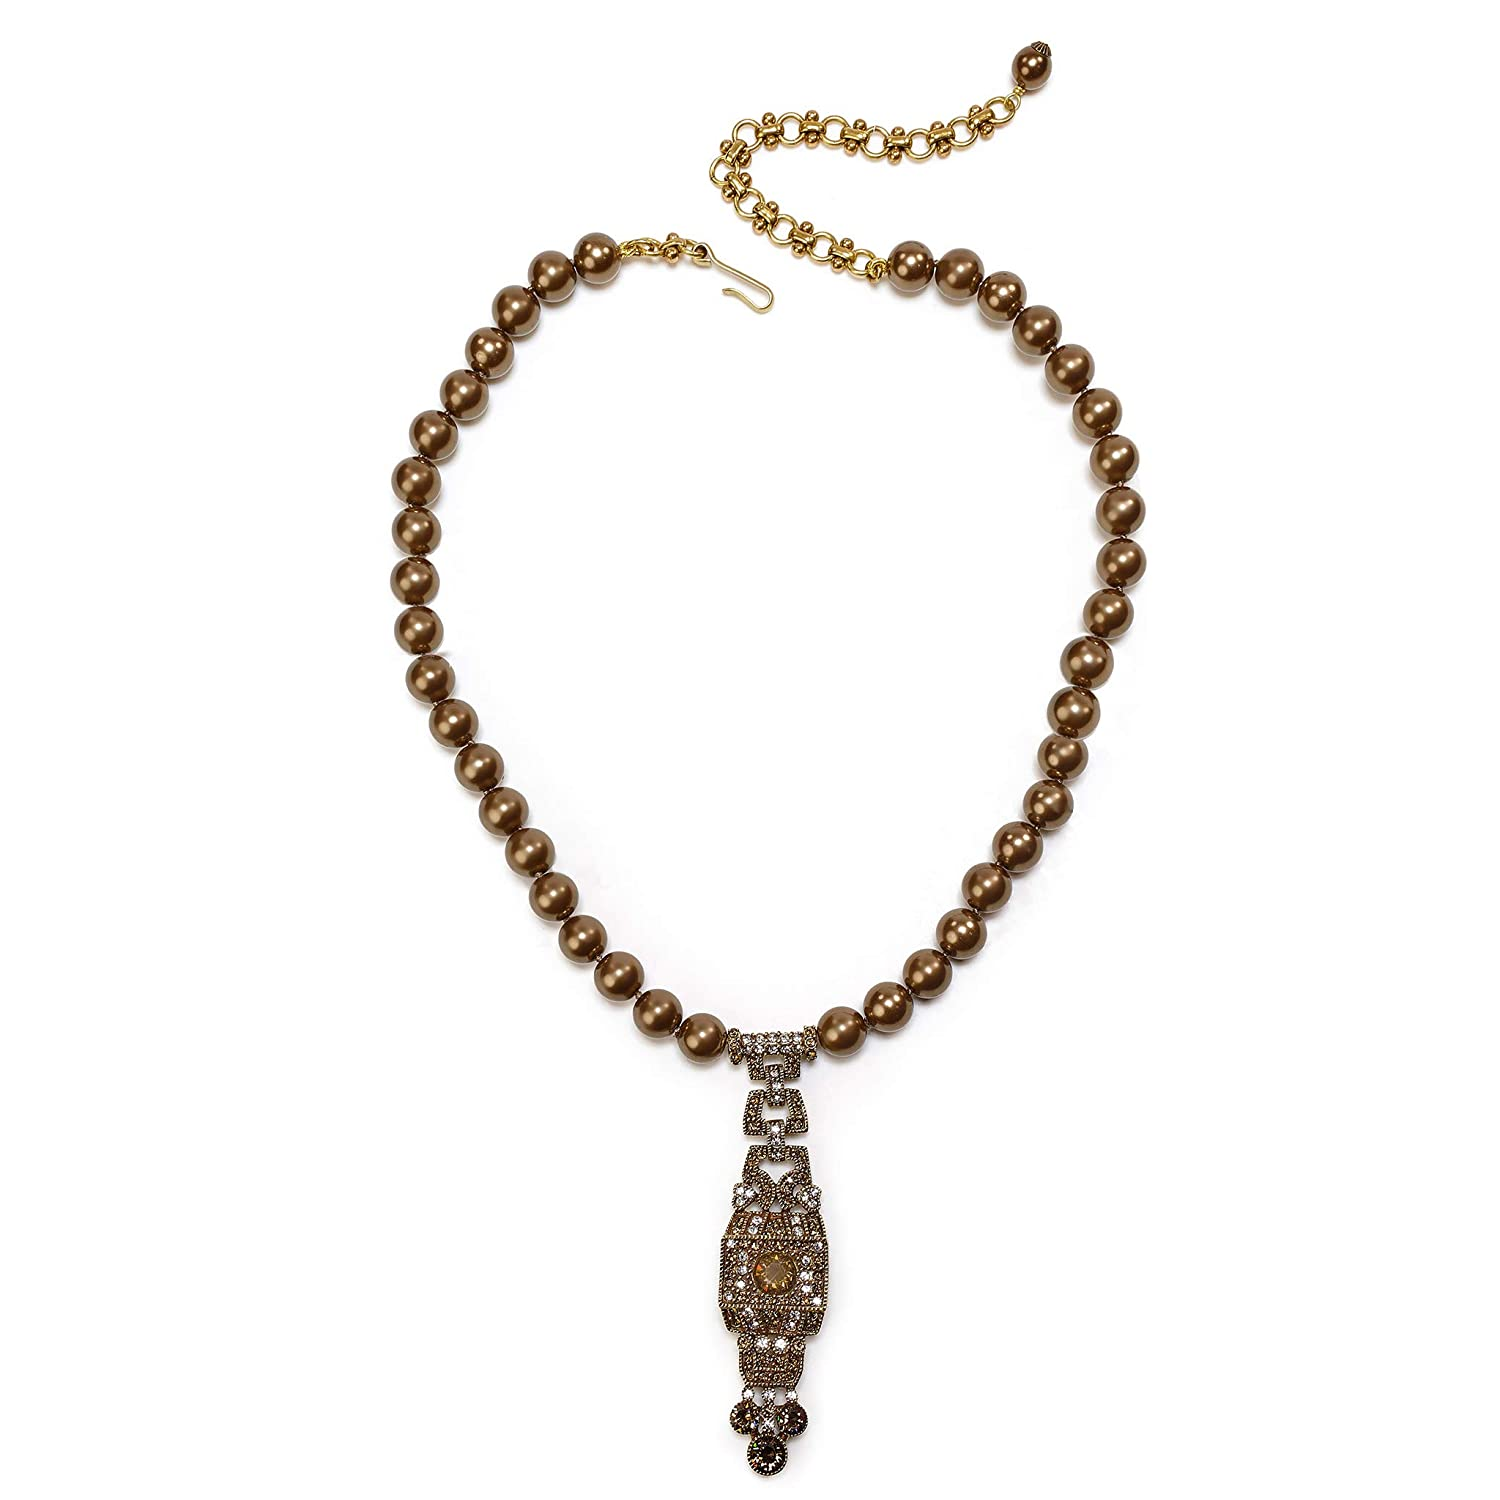 Vintage Style Jewelry, Retro Jewelry Heidi Daus Simple and Stylish Crystal Art Deco Single Strand Brown Pearled Drop Necklace $159.95 AT vintagedancer.com